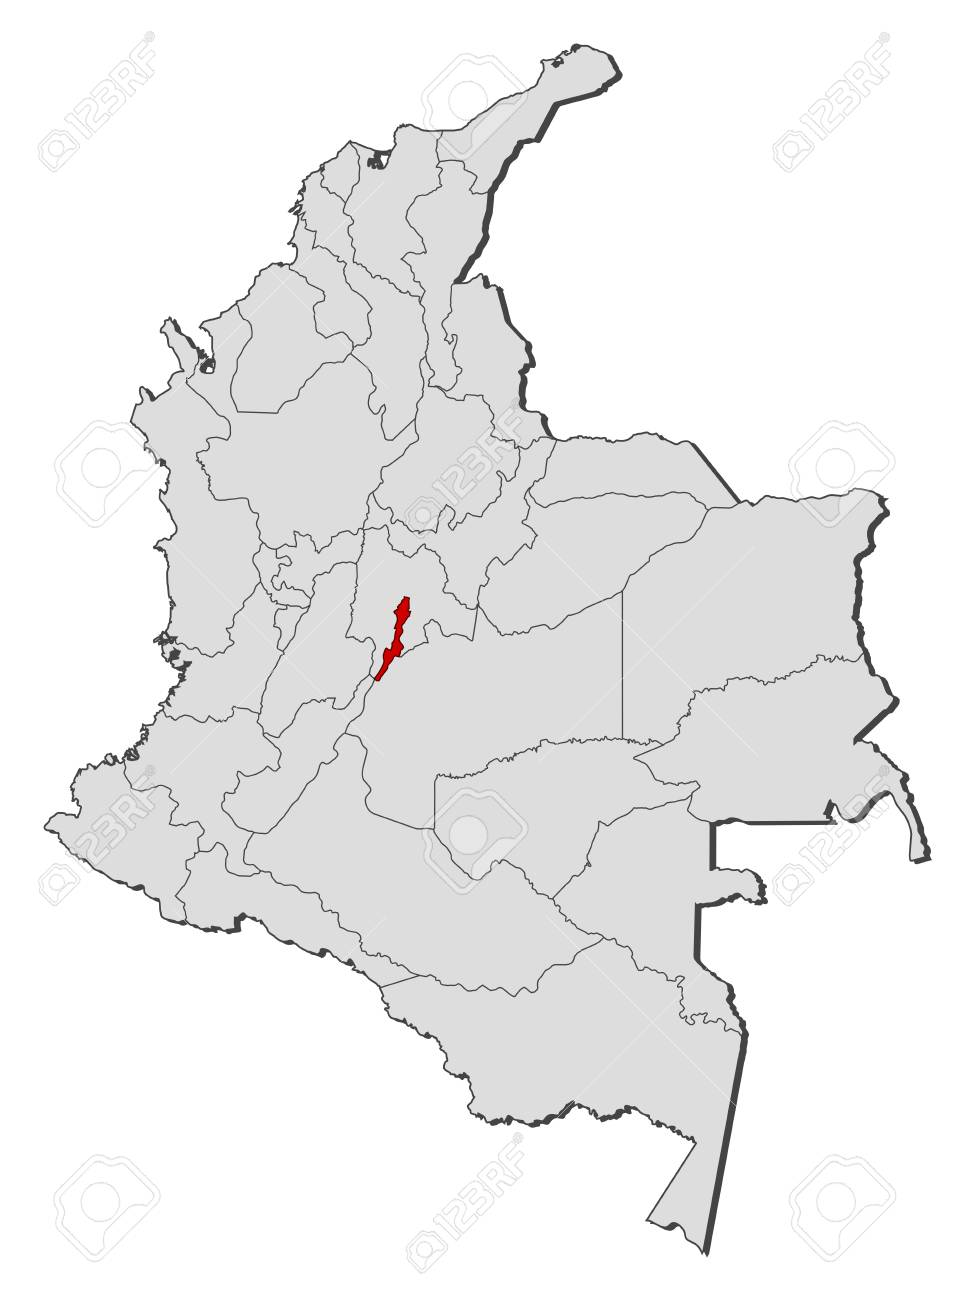 Map of Colombia with the provinces, Bogota is highlighted.